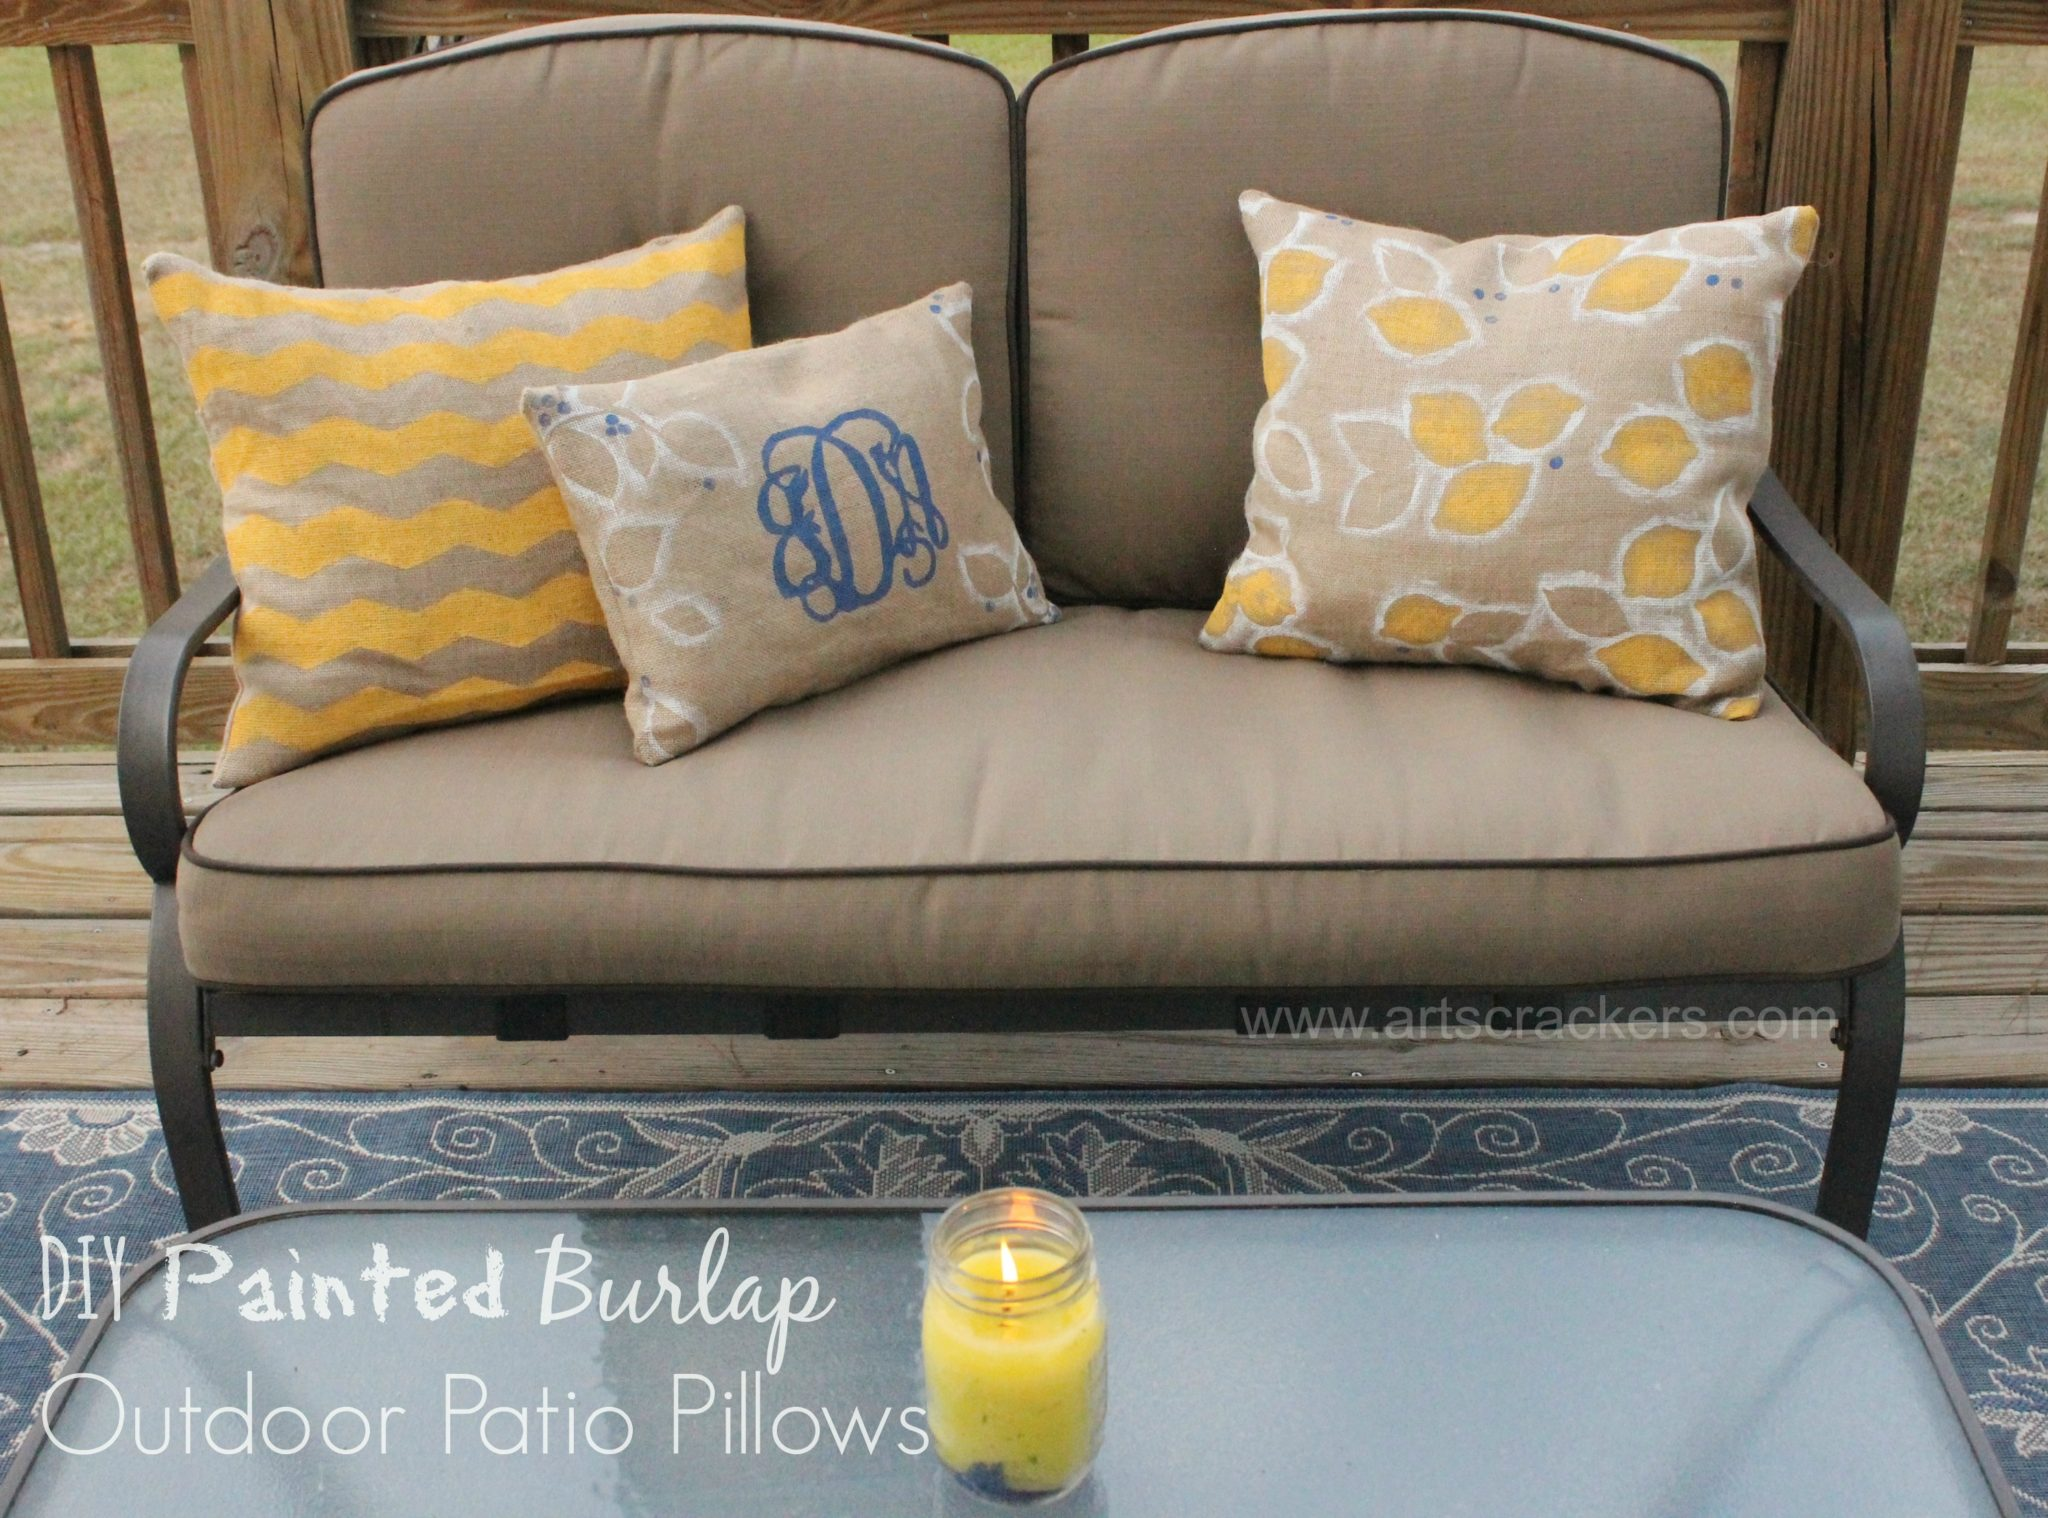 Painted Burlap Outdoor Patio Pillows DIY